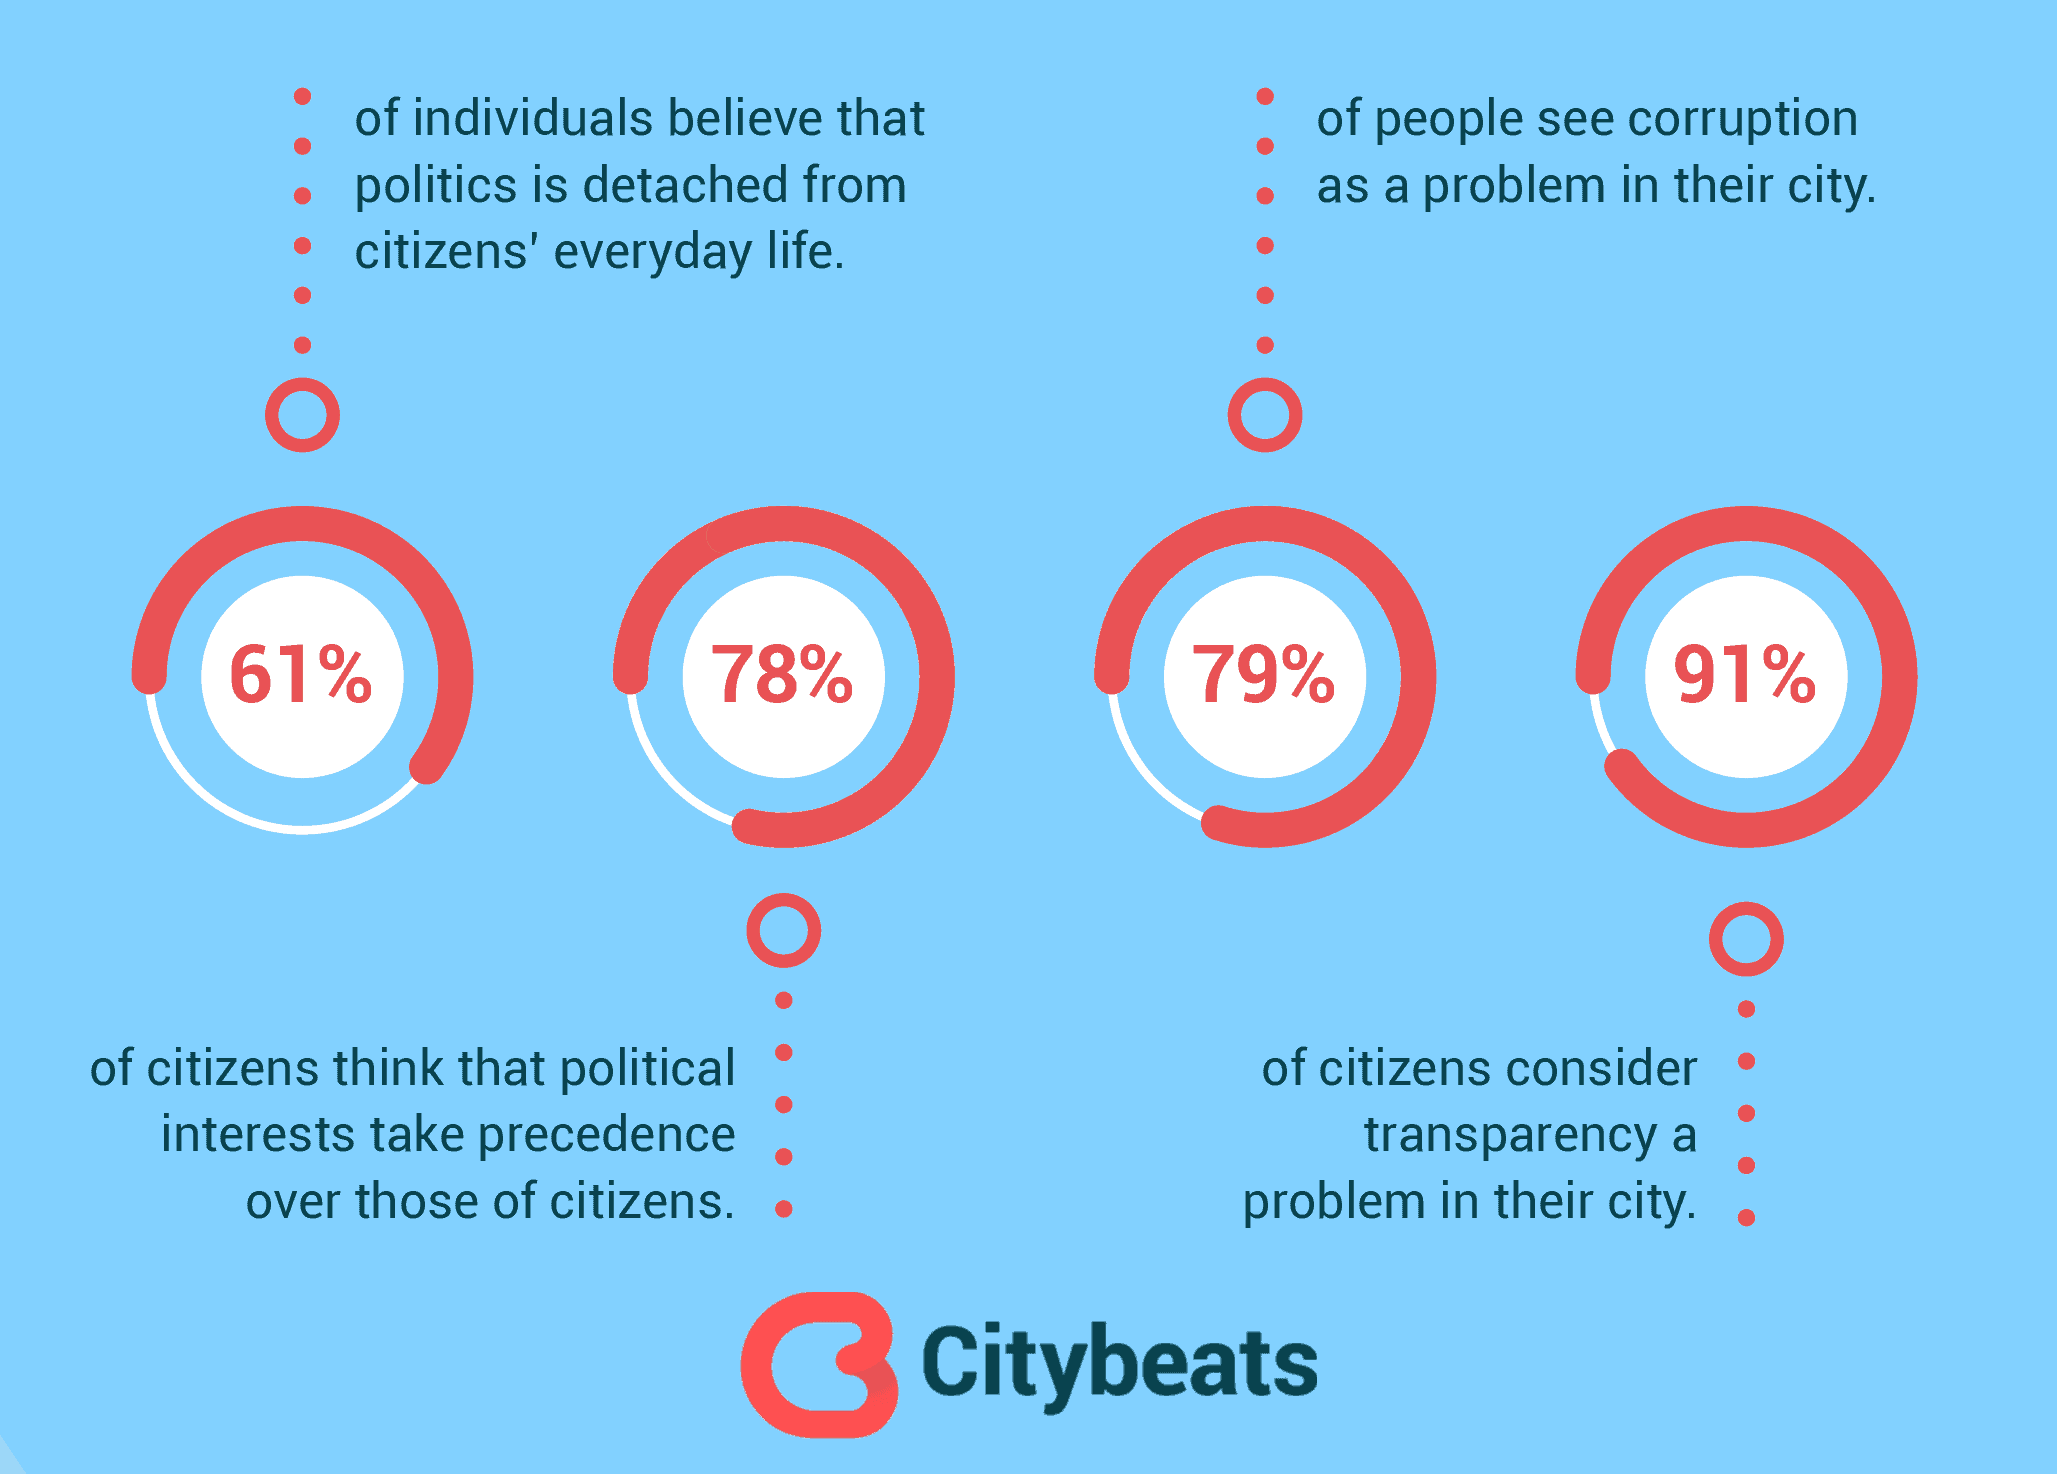 Citybeats - Survey